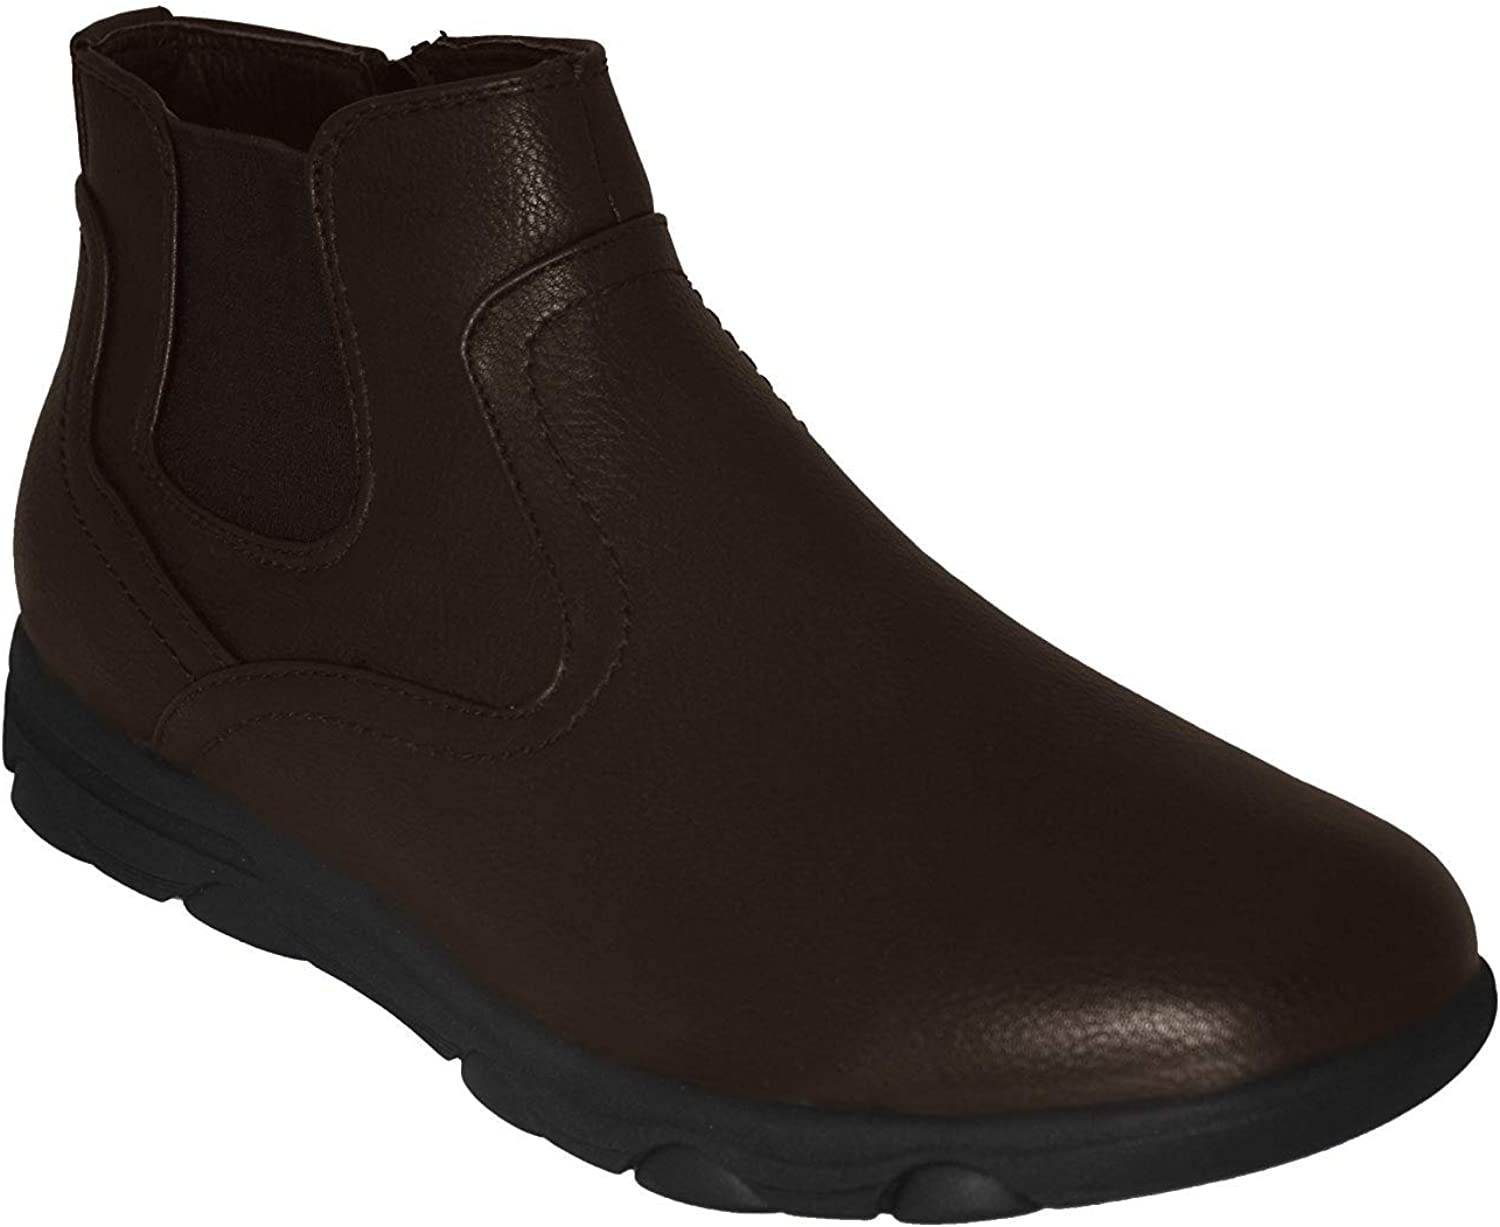 Gelato Mens 8558 Non-Slip Professional Comfort Work Boot Shoe with Memory Insole